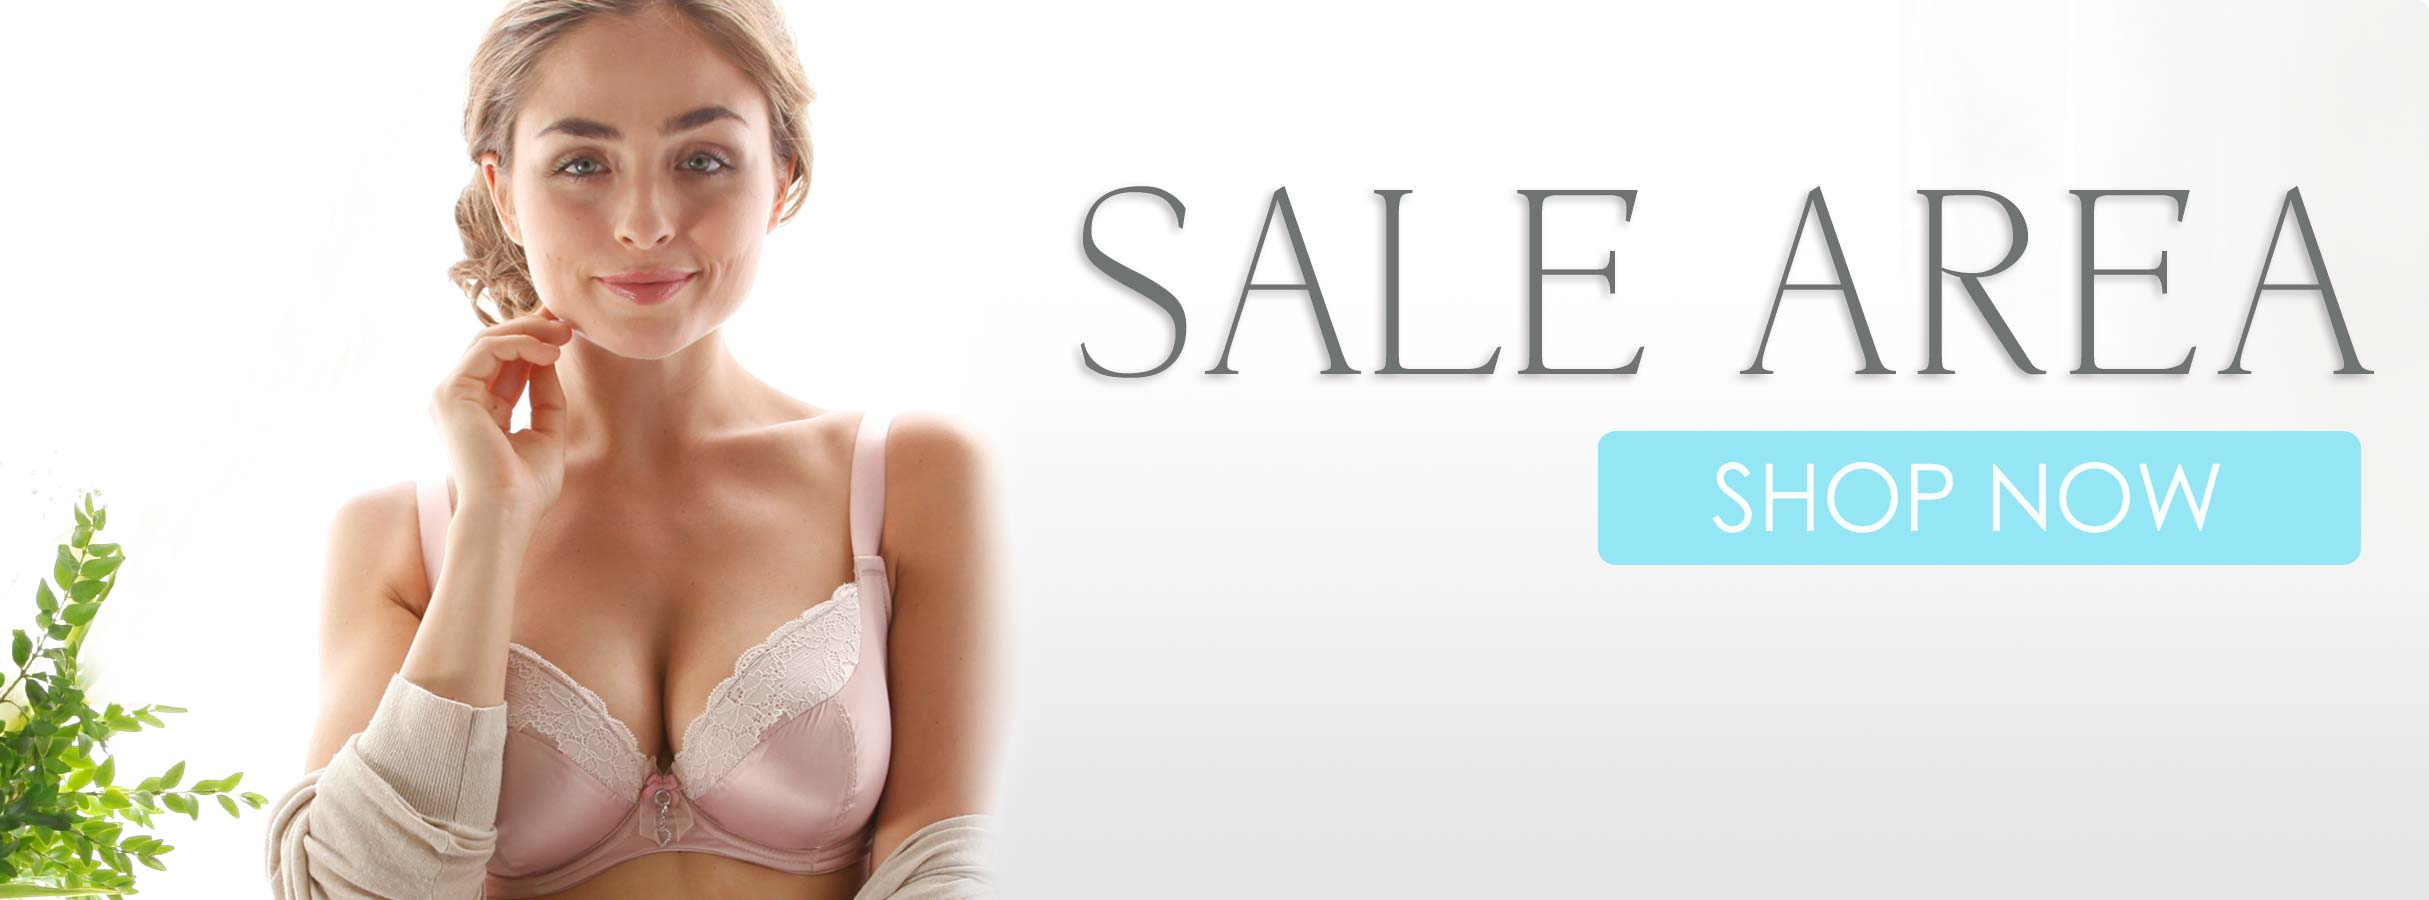 Discounted bras, panties and swimwear in the SugarShape sale category